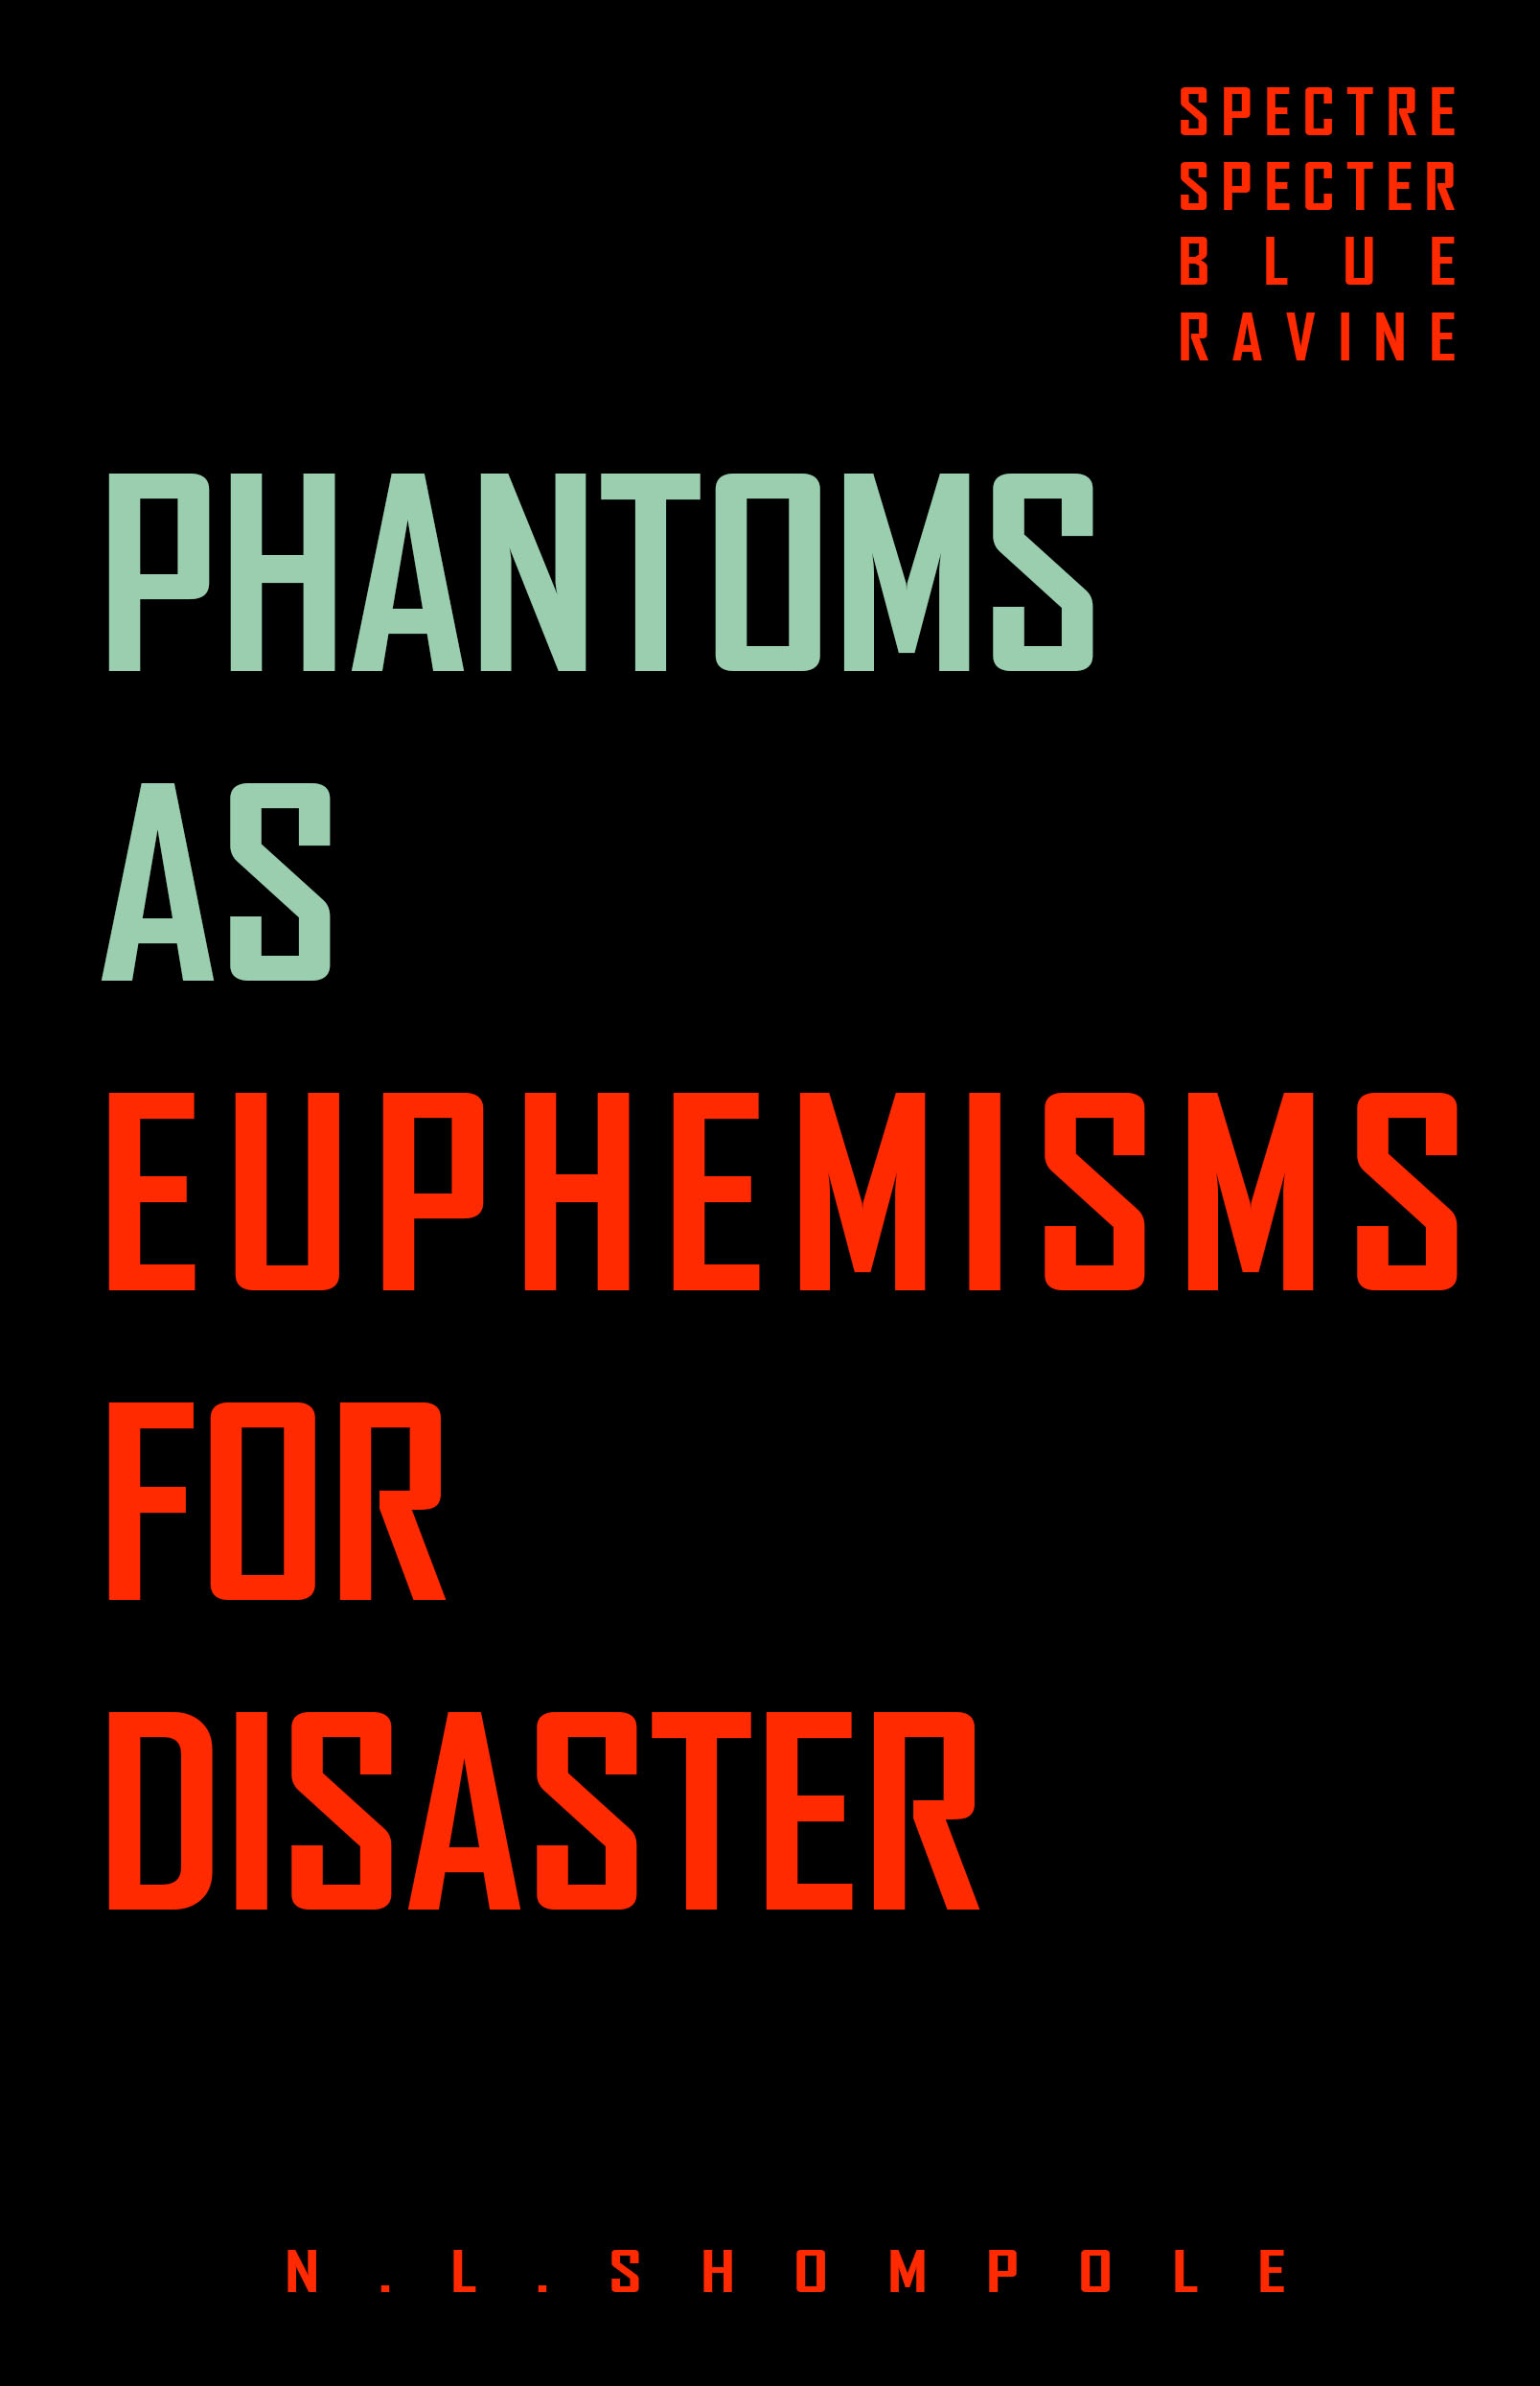 PHANTOMS AS EUPHEMISMS FOR DISASTERBY N.L. SHOMPOLE - GENRE: PoetryAs a collection of poetry and prose, Phantoms as Euphemisms for Disaster explores the many faces of loss. Not only the loss of love, but loss of language, culture, identity and self. The book seamlessly navigates the silences between harrowing conversations, to realizations about growing up, about grief and how to deal with loss, to the reawakening of tenderness, hope and awareness in the innate power of self. This is a fantastic collection for anyone who appreciates a unique voice, beautiful language and the ache and sweetness that is living.